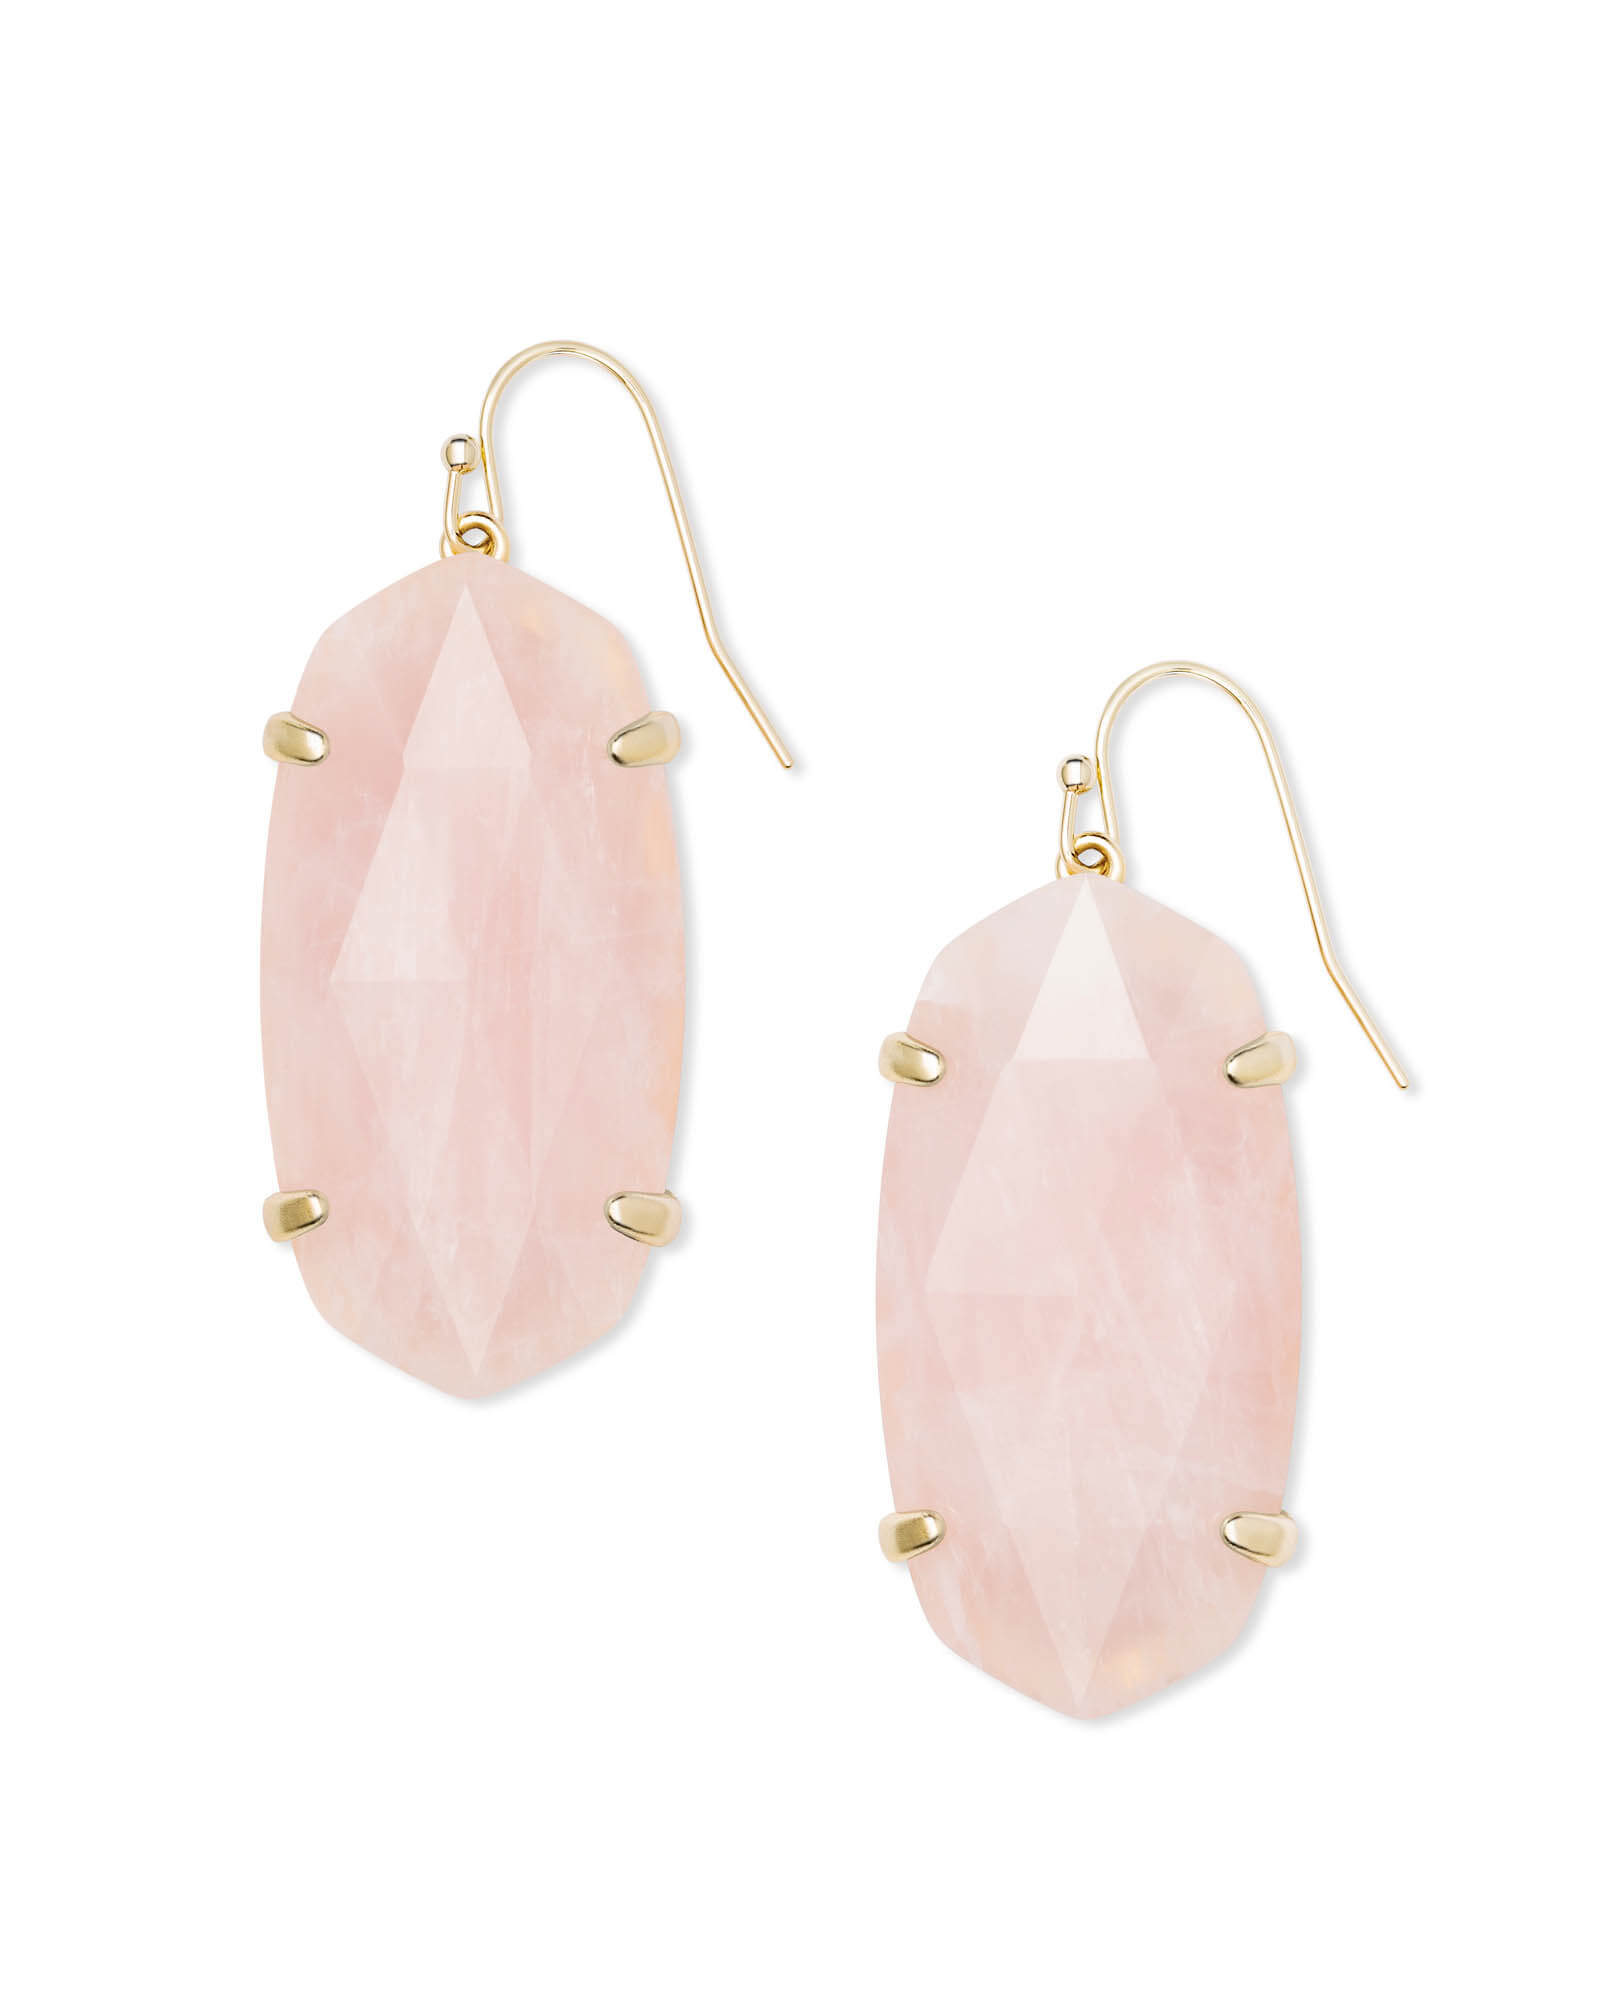 Esme Gold Drop Earrings In Rose Quartz